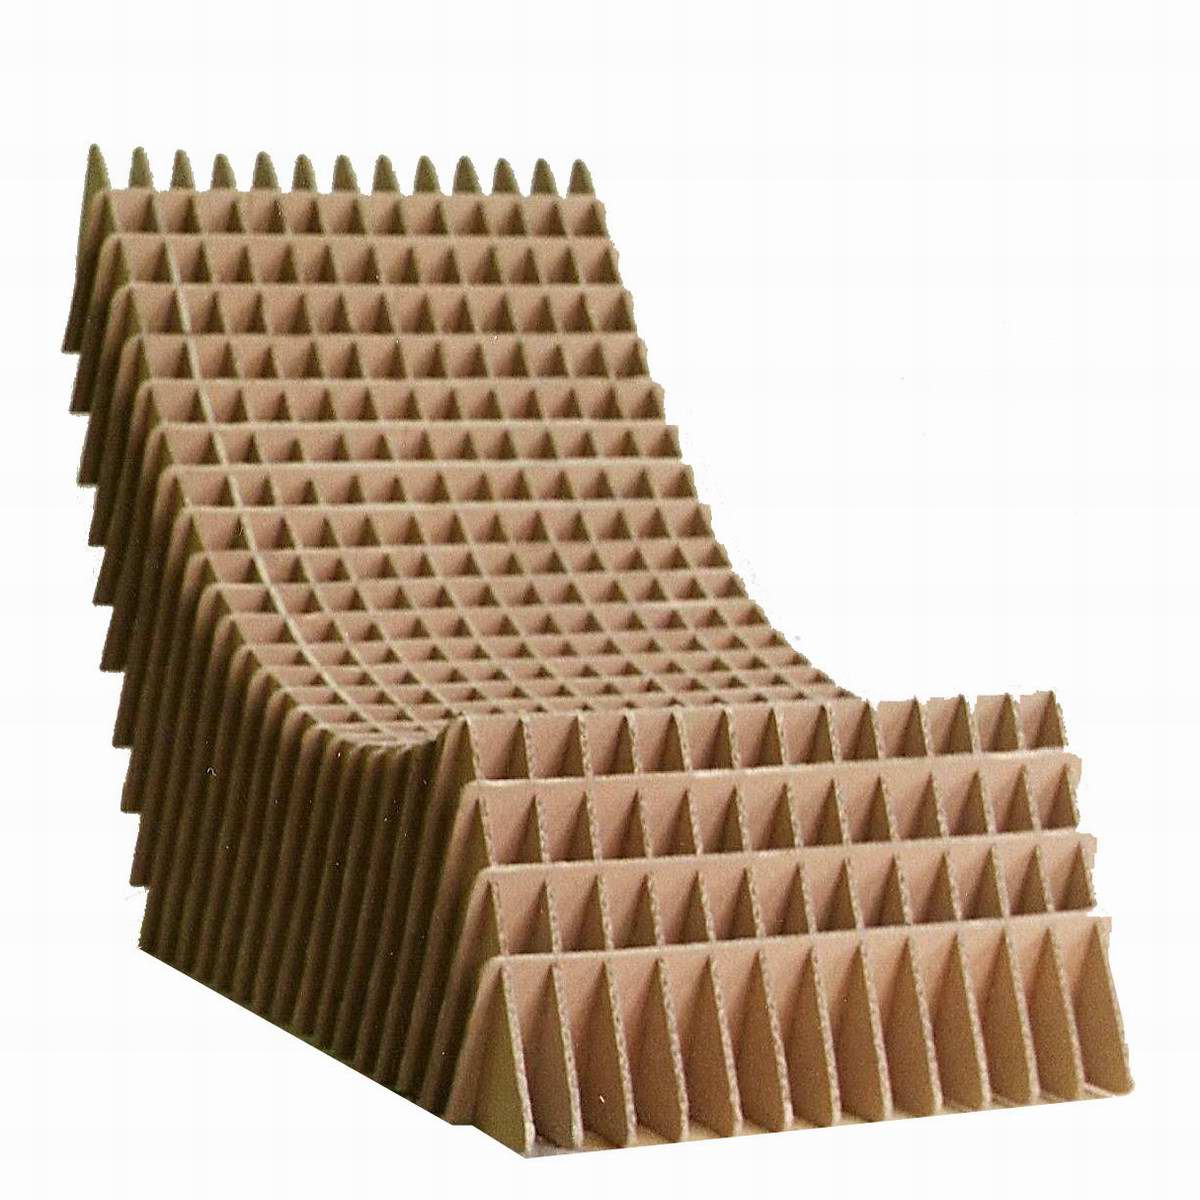 Cardboard Chair 7 Wacky Pieces Of Cardboard Furniture Youll Have To See